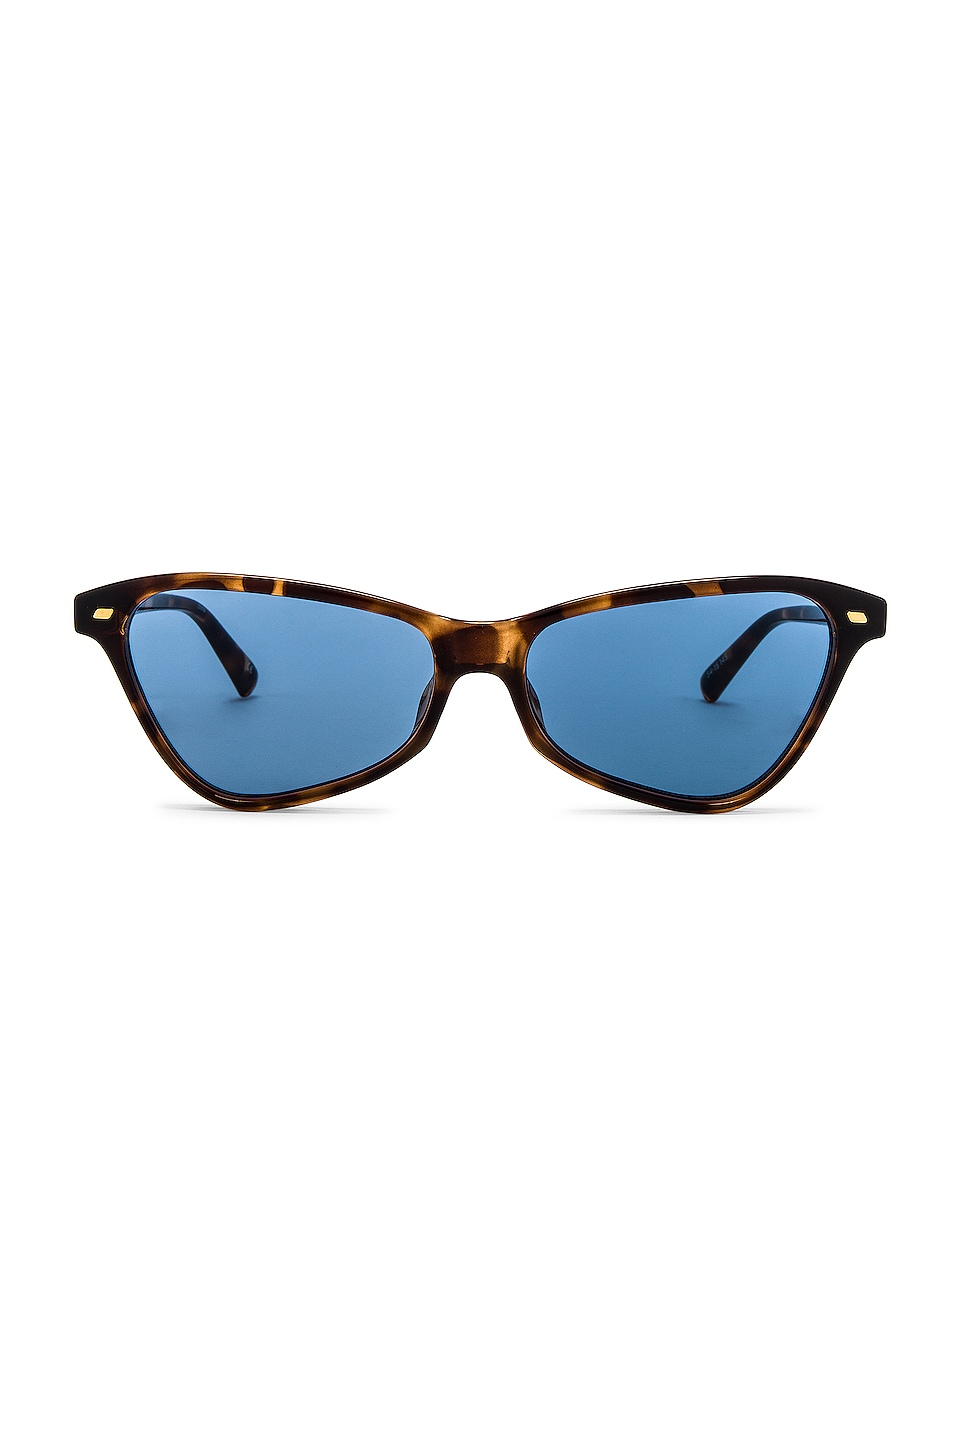 Le Specs Situationship in Tort & Navy Mono